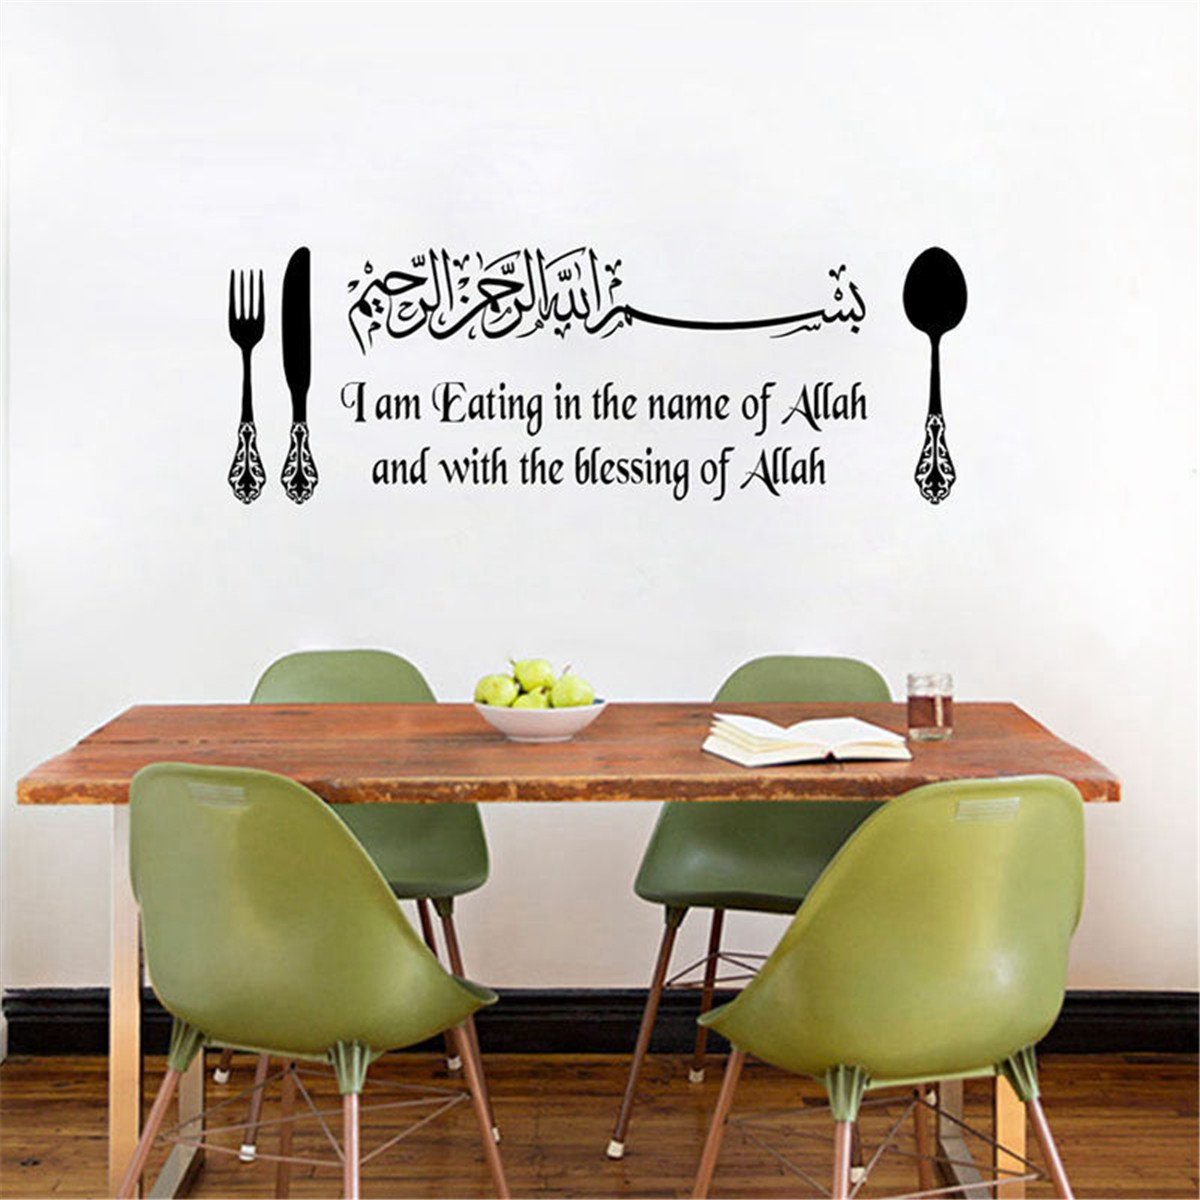 Muslim Islamic Vinyl Wall Stickers Dining Room Kitchen Removable PVC Art Decal Mural Wallpaper Home Decoration Black 73x28cm